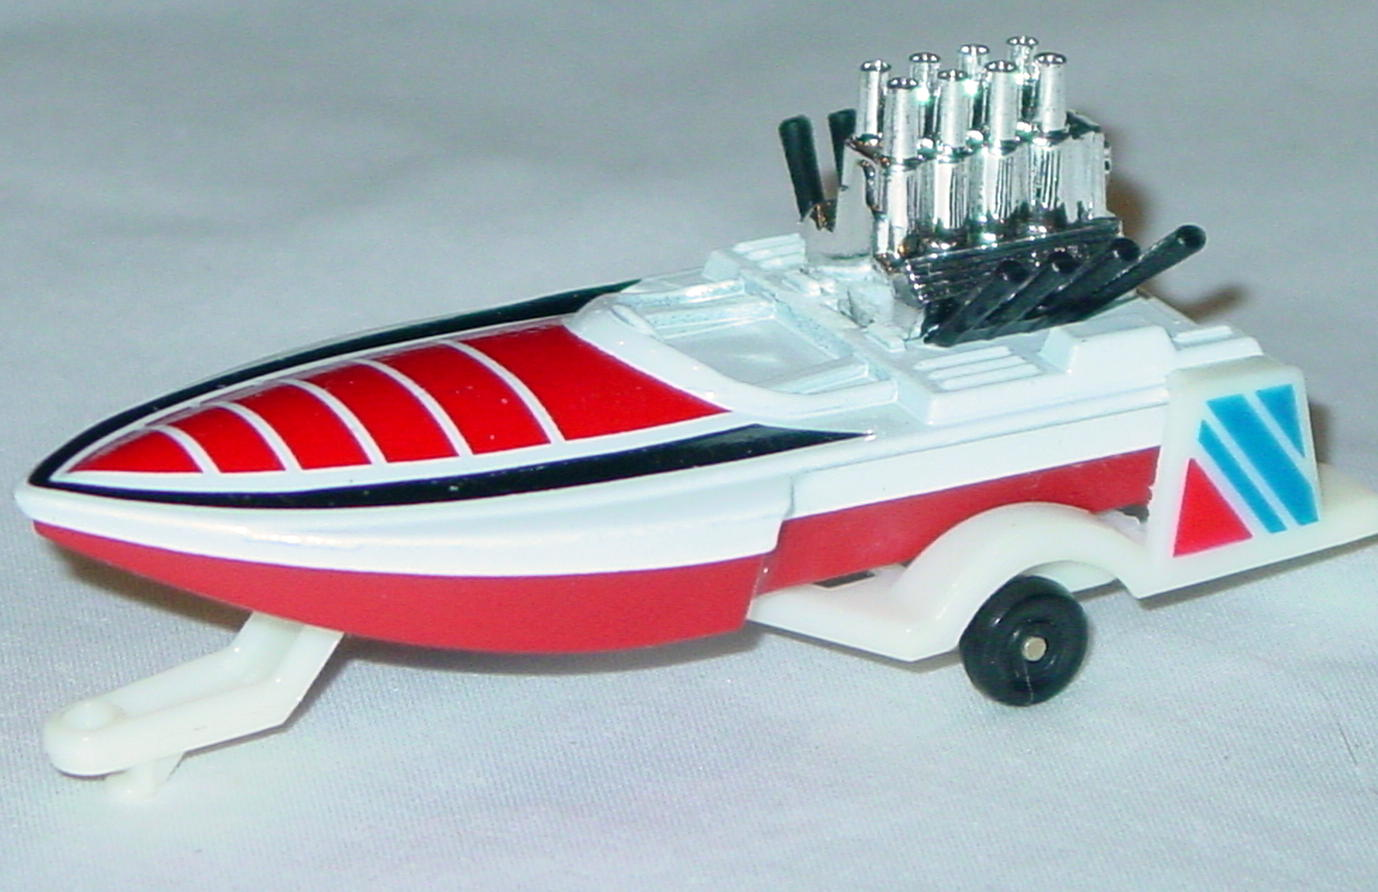 Offshore SuperFast 05 B 20 - Seafire White and Red white trailer red and black tampo